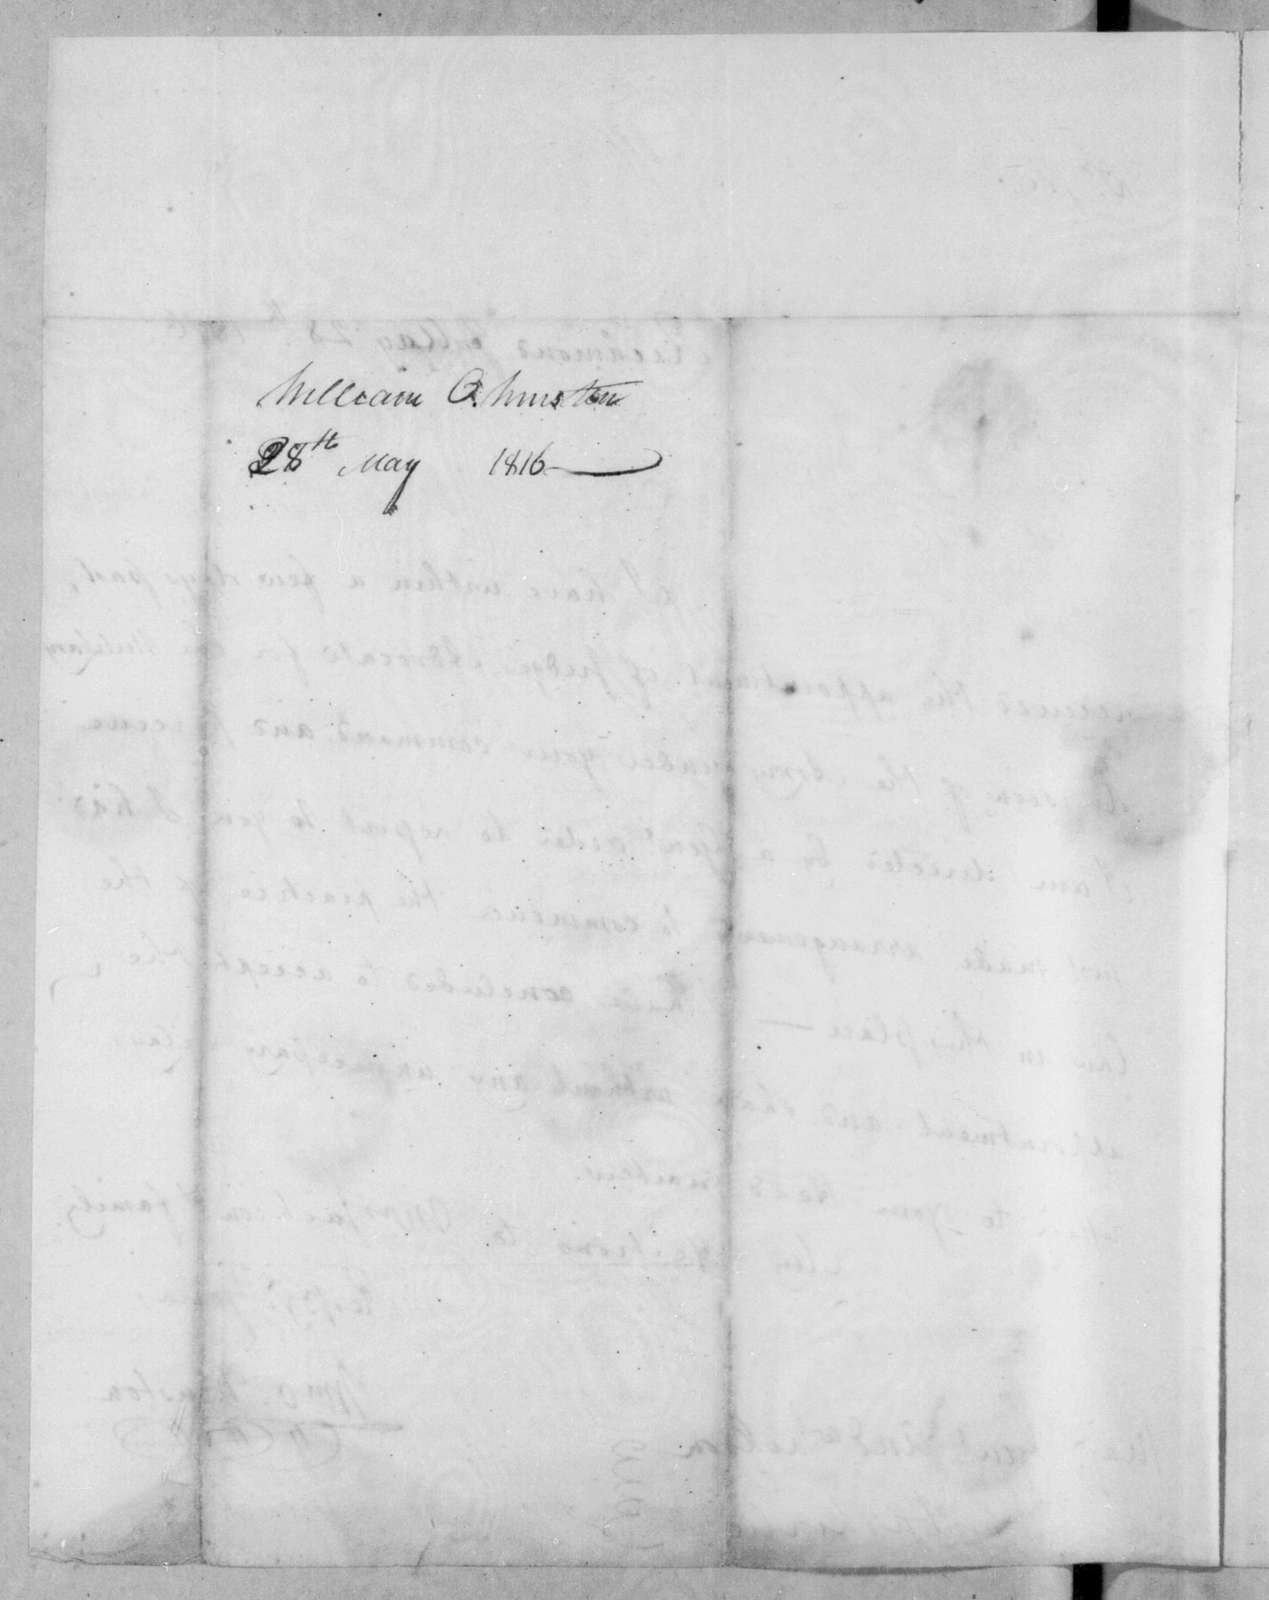 William O. Winston to Andrew Jackson, May 28, 1816